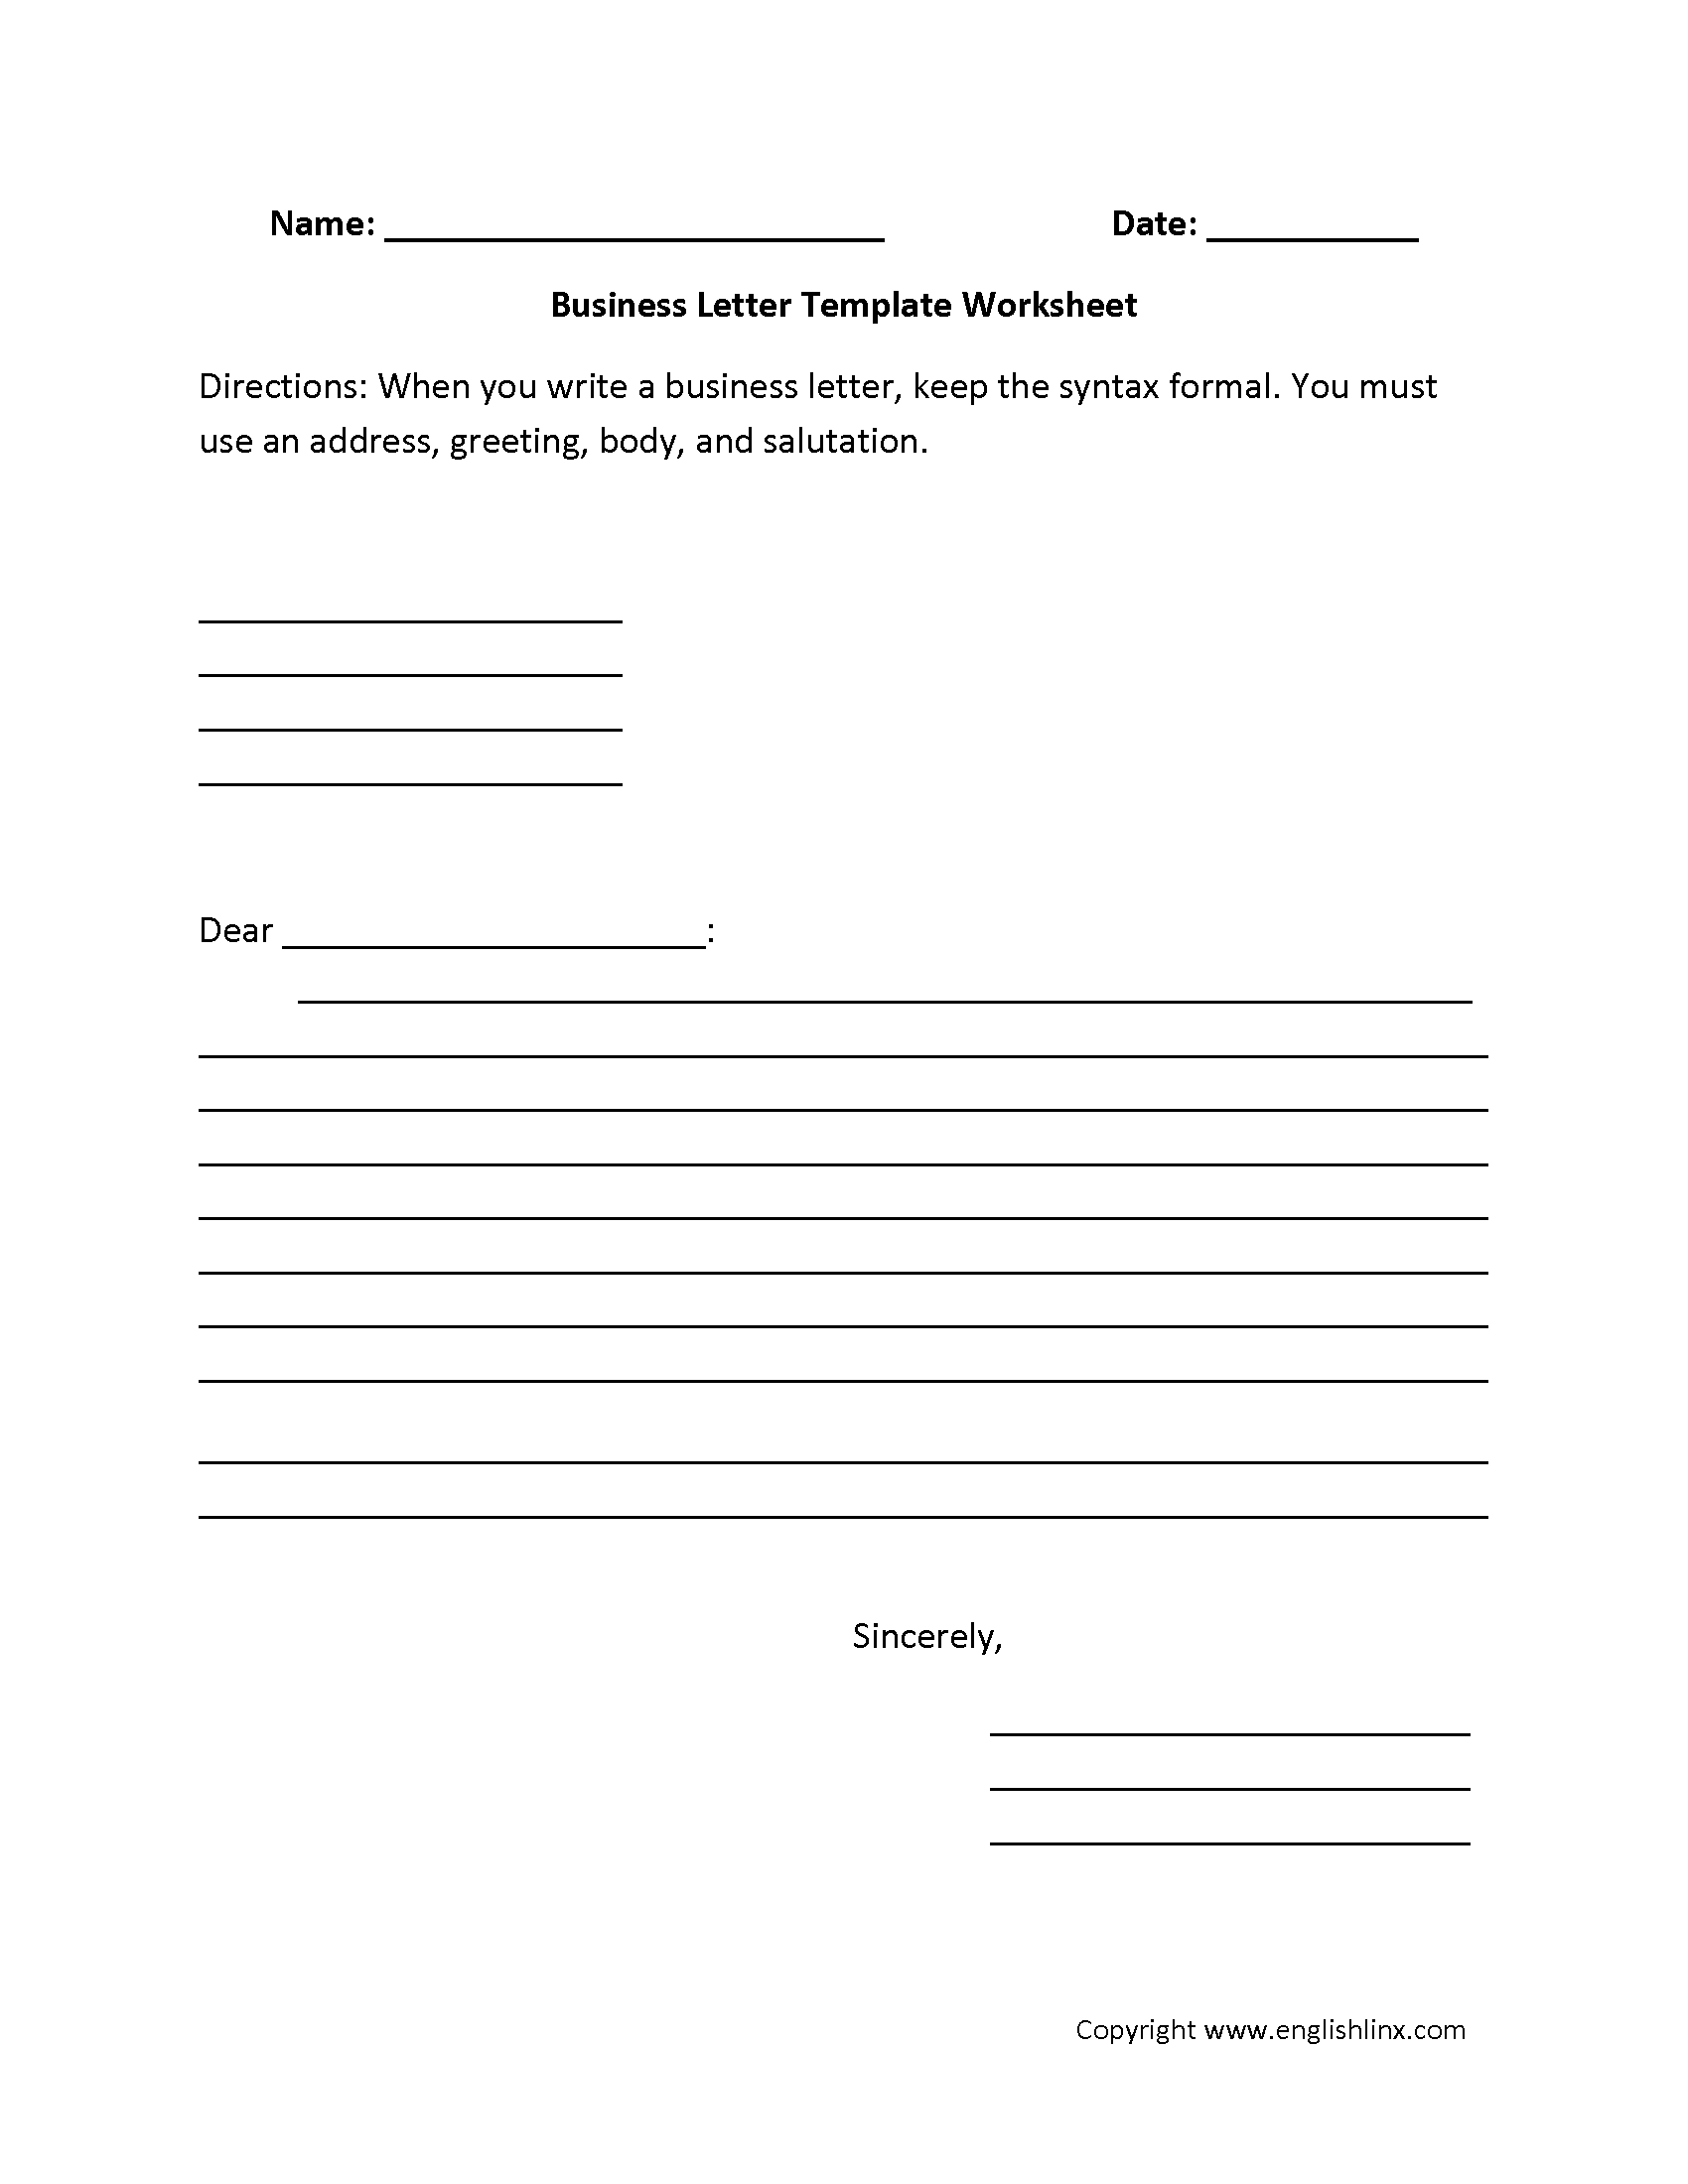 writing worksheets letter writing worksheets business letter writing worksheets